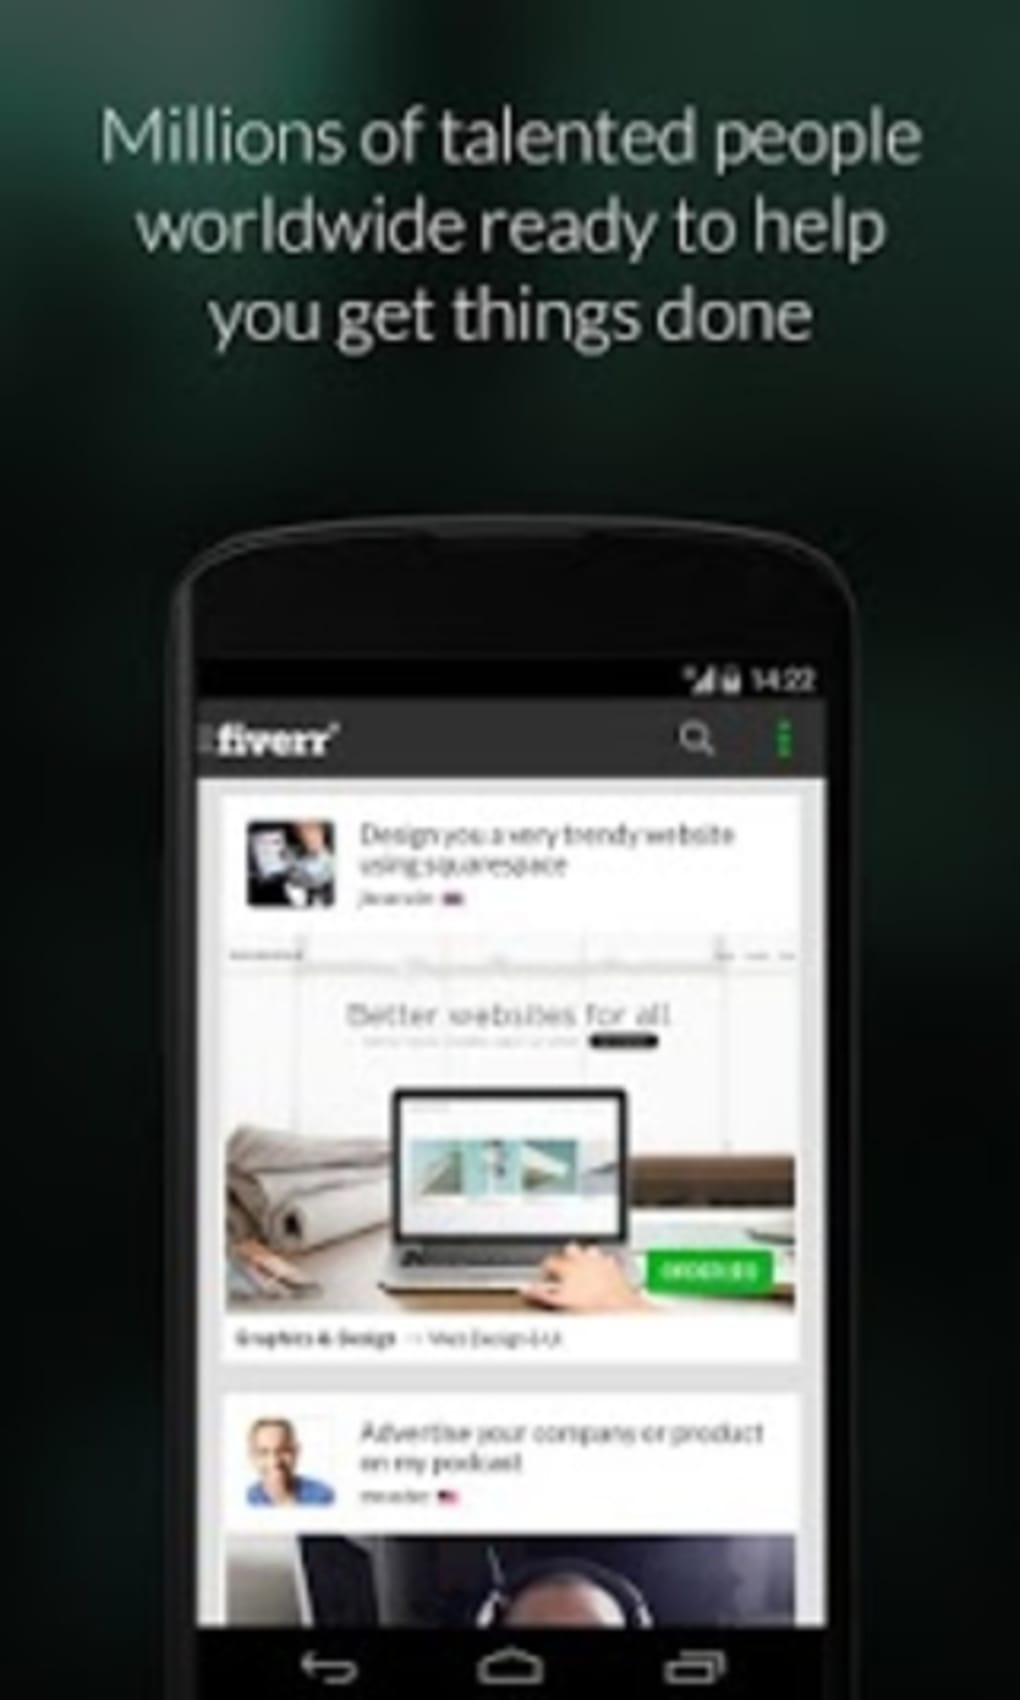 Fiverr for Android - Download